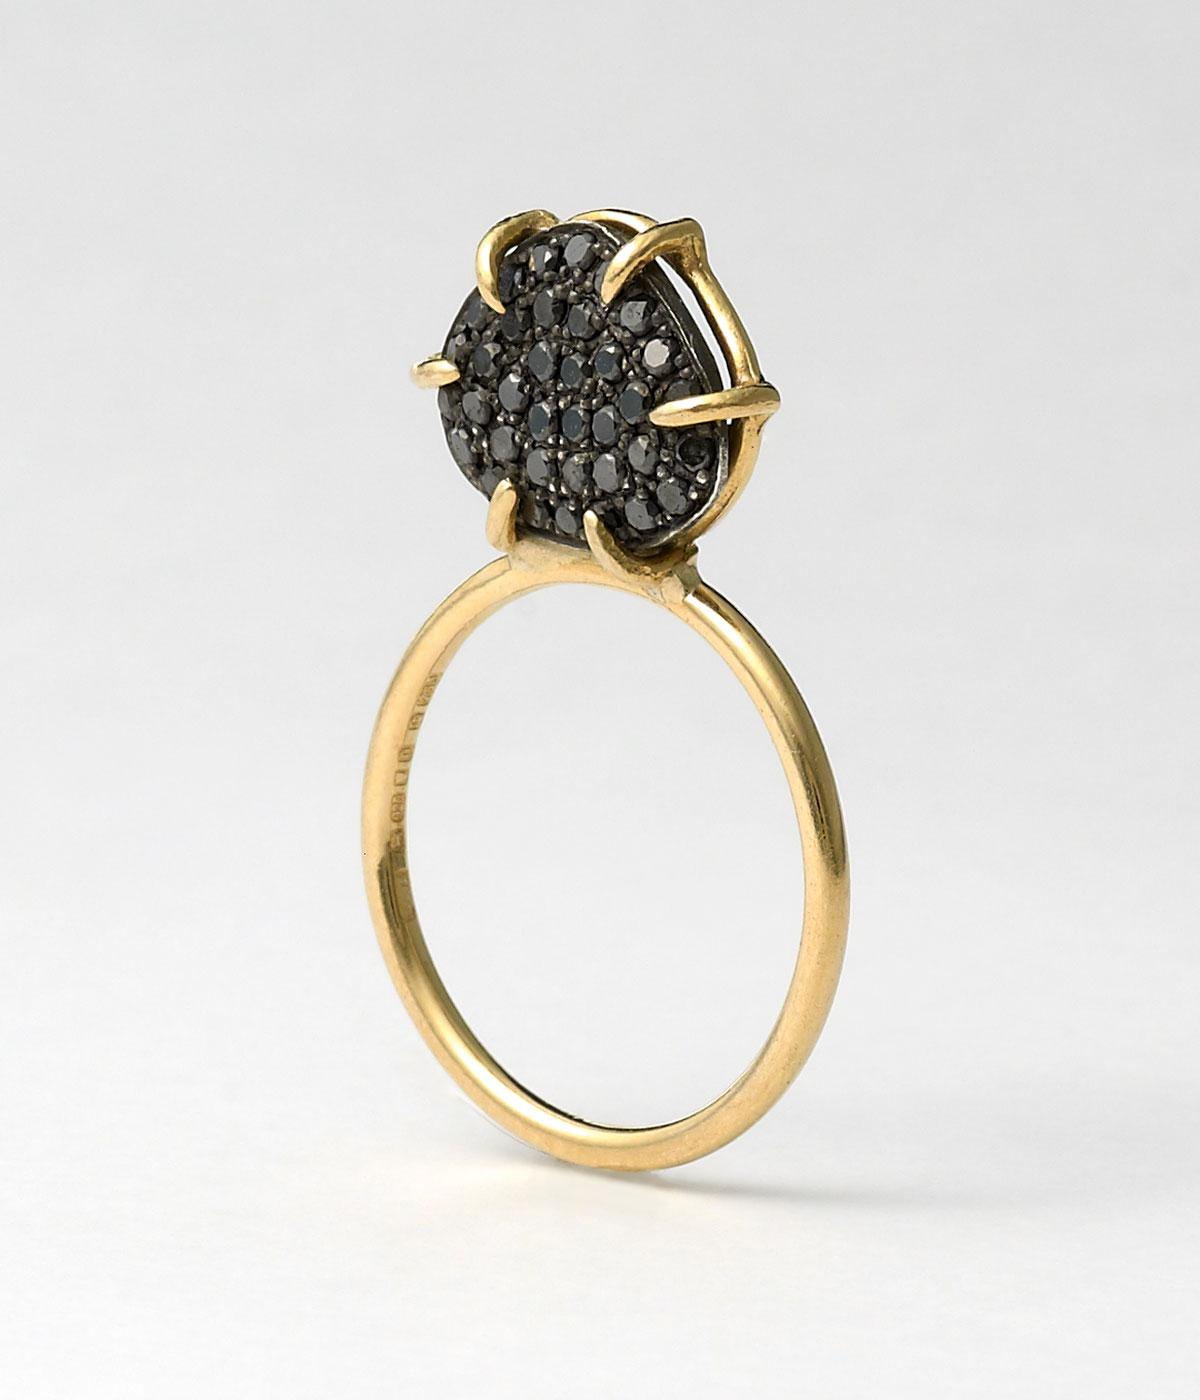 Black diamond ring by Dalilia